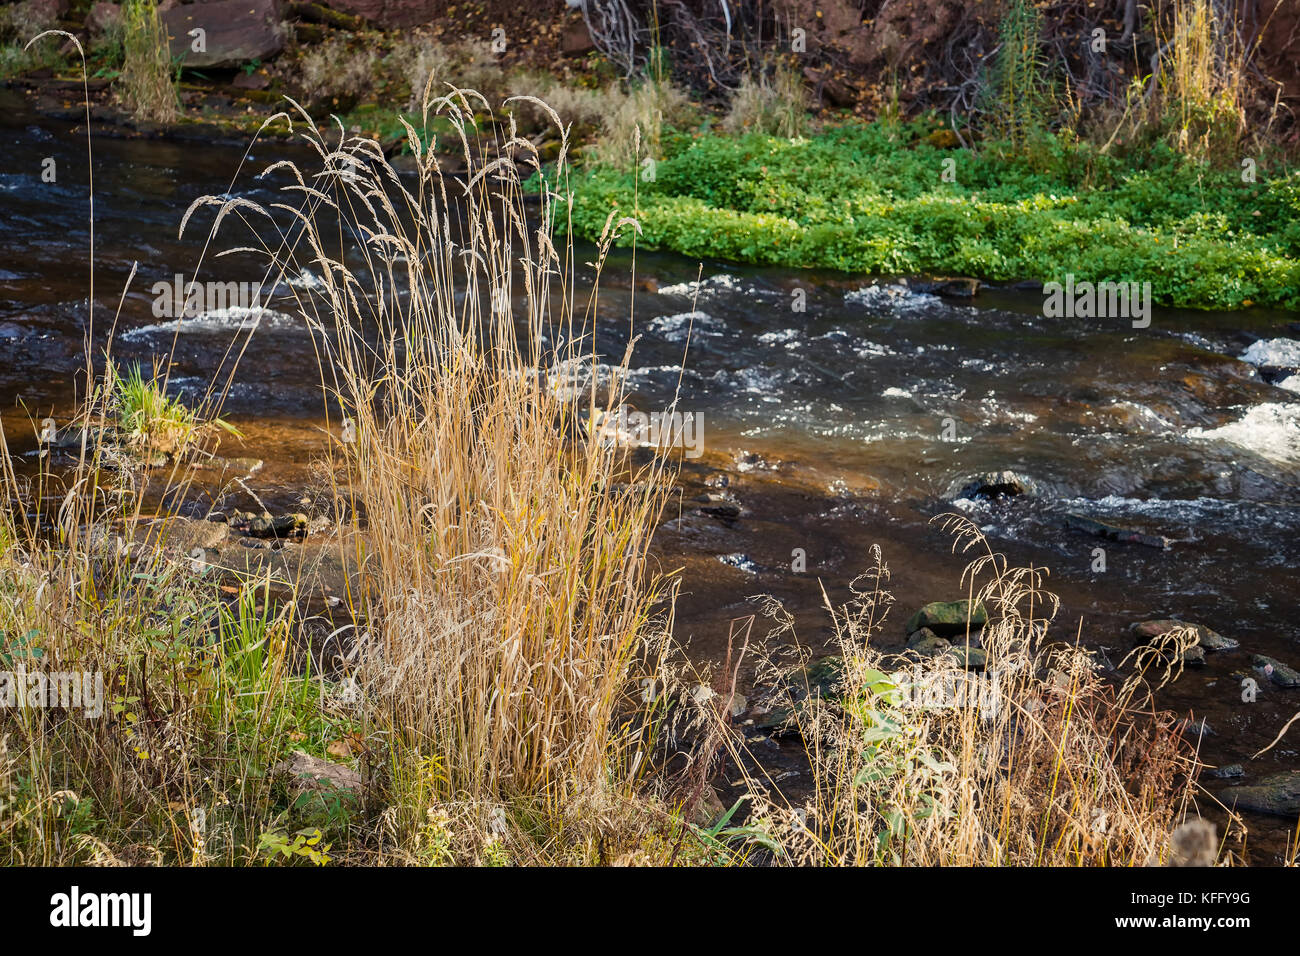 Vegetation along the shore of a small river in autumn. - Stock Image